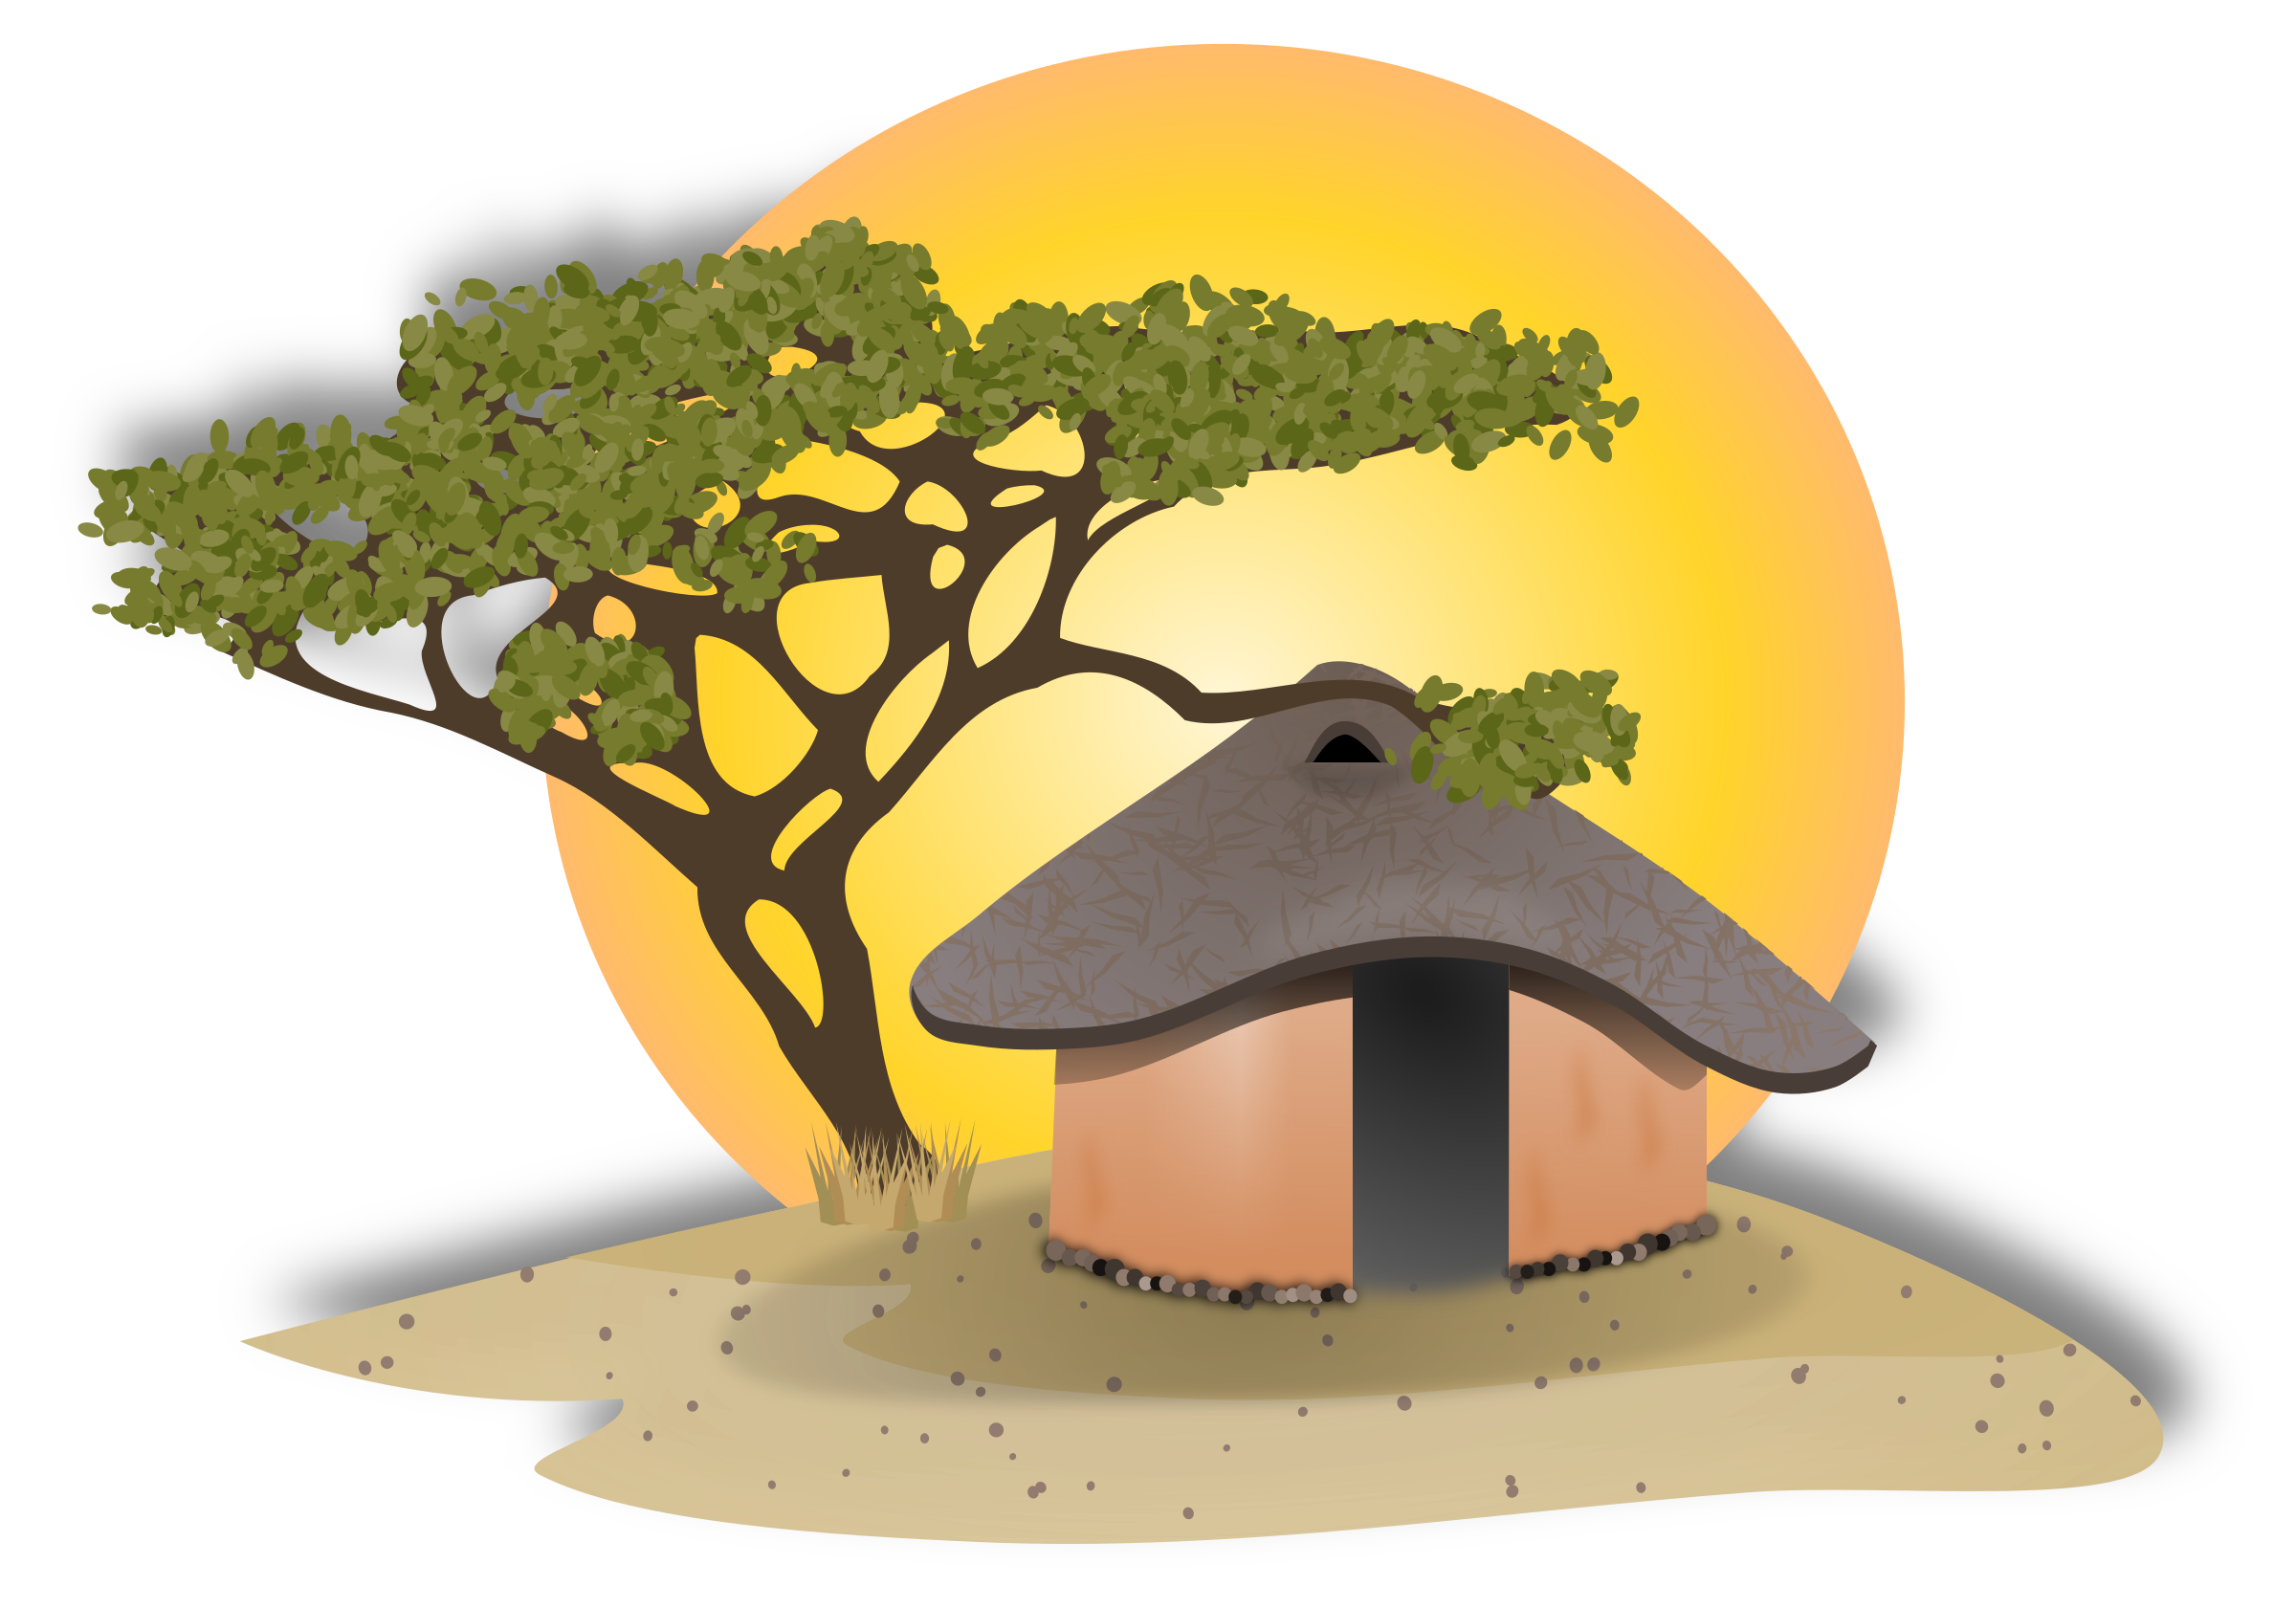 clip transparent stock Technology drawing village. African hut at getdrawings